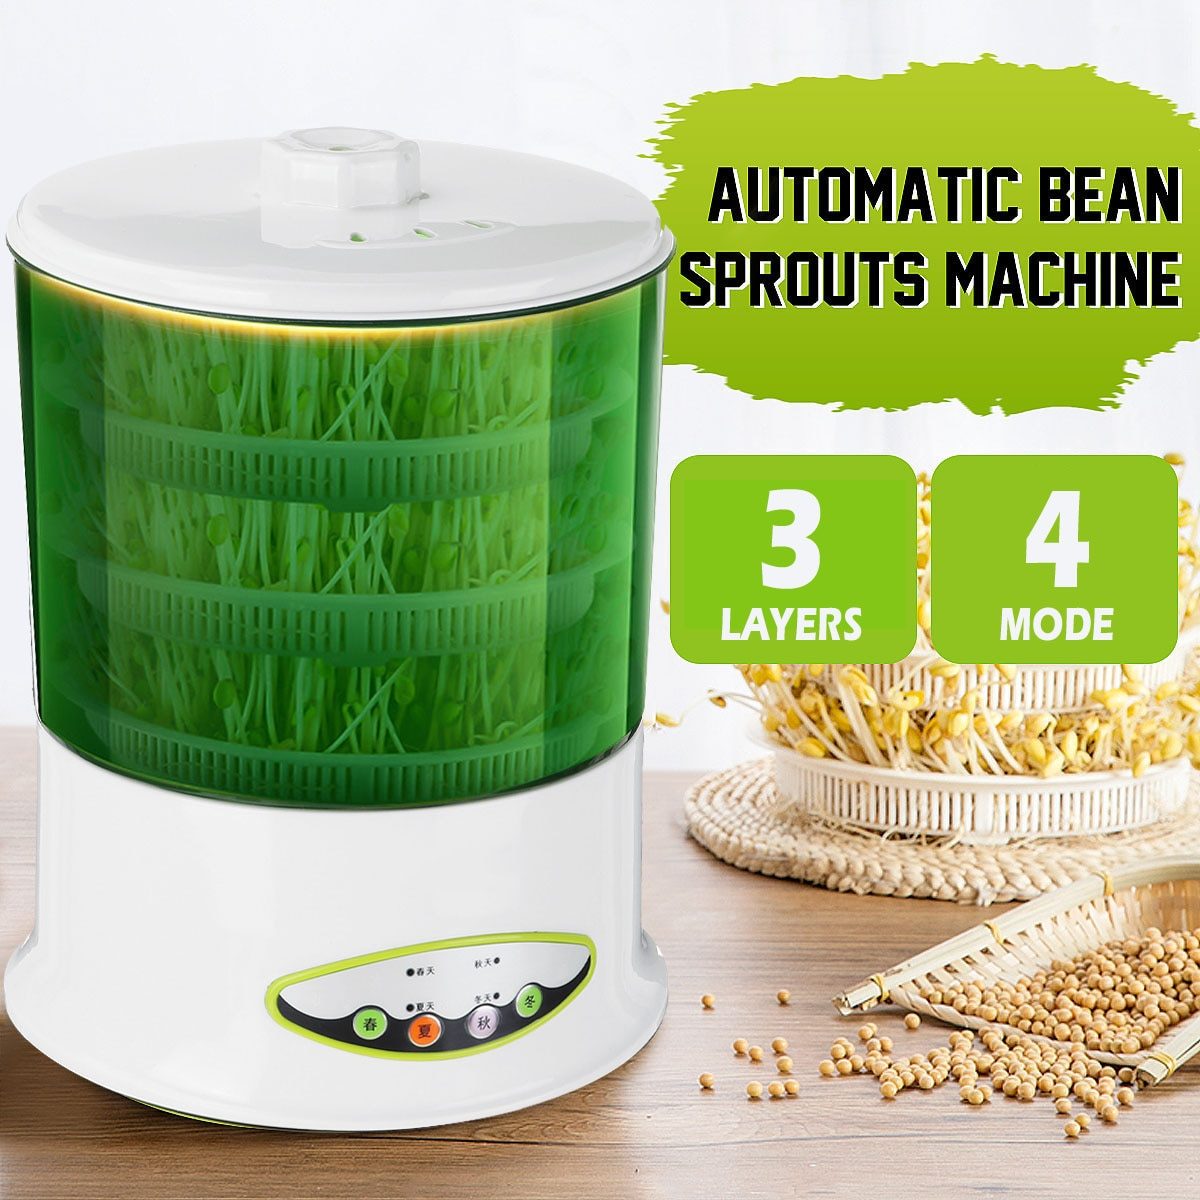 110v-220v-Home-Use-Intelligence-Bean-Sprouts-Machine-Large-Capacity-Thermostat-Green-Seeds-Growing-Automatic-Bean.jpg